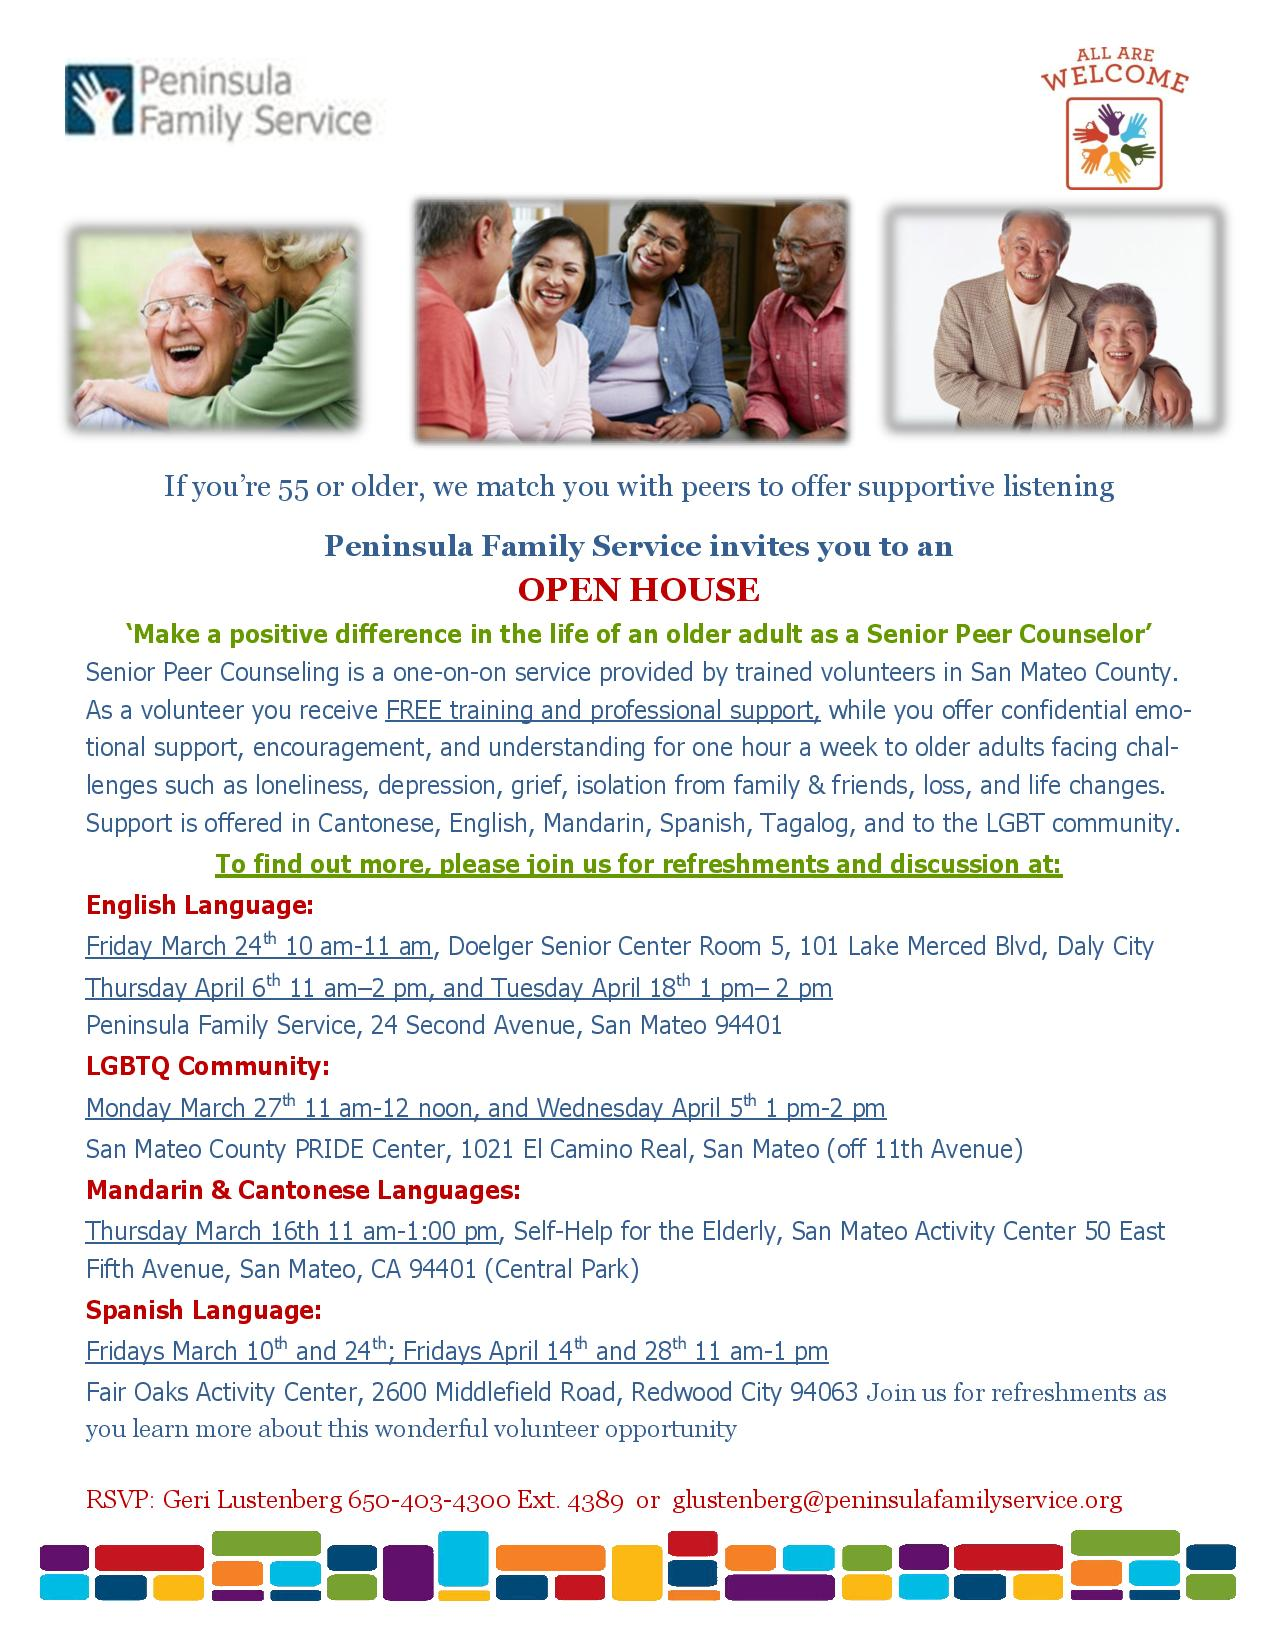 Peninsula Family Service invites you to an OPEN HOUSE